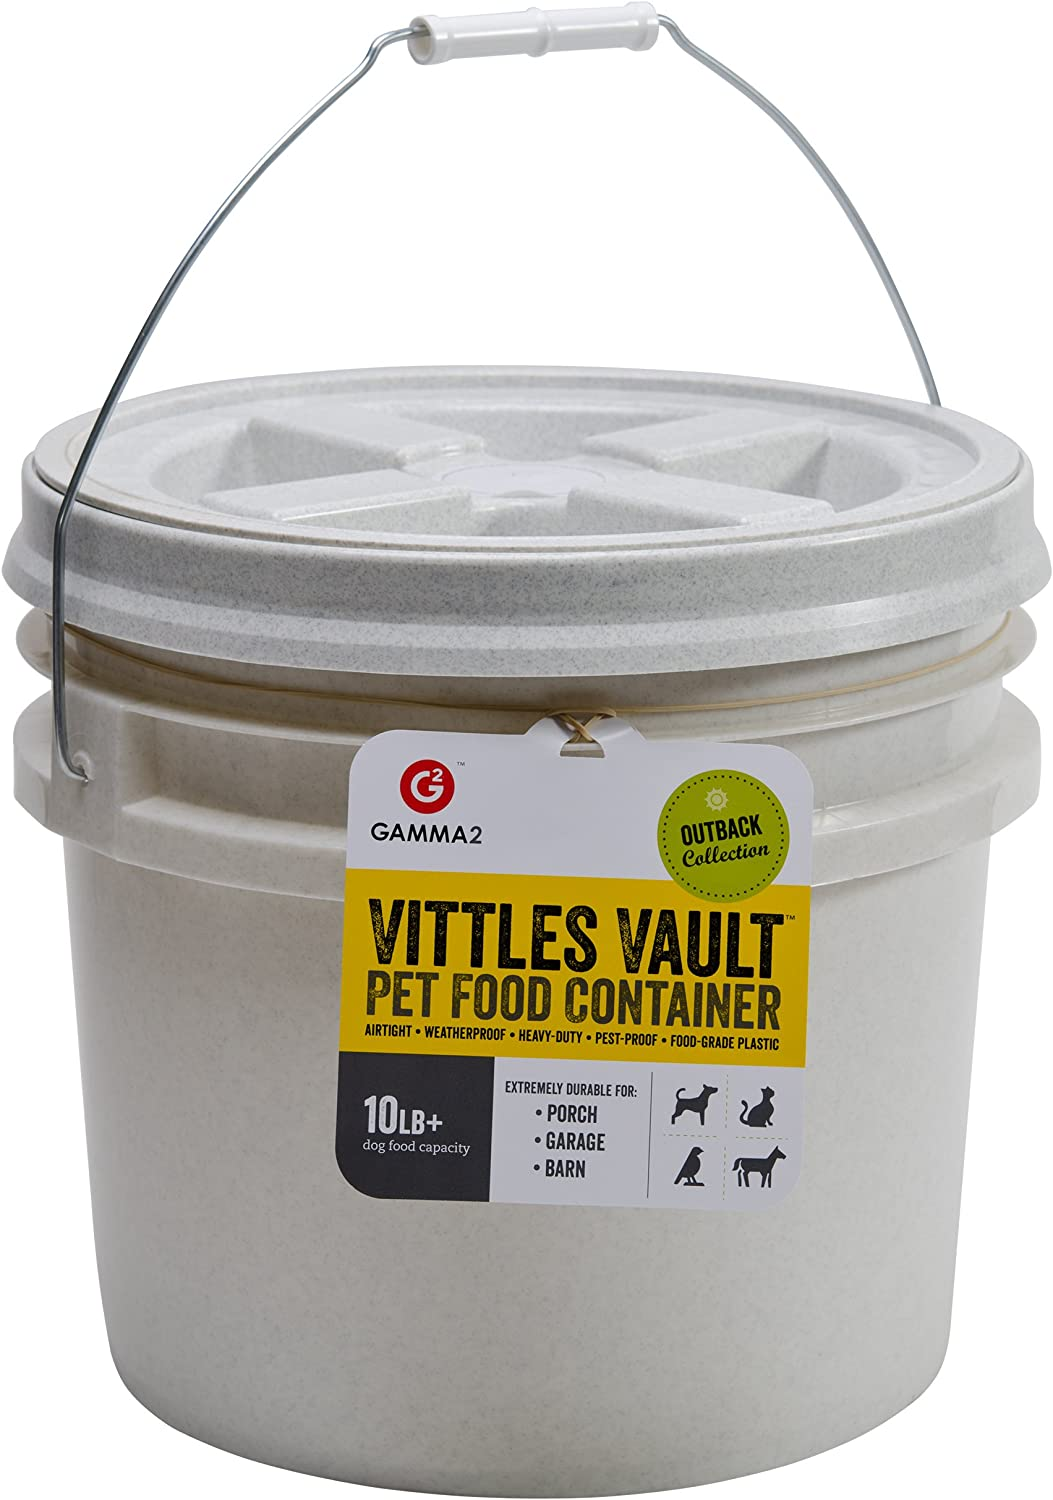 Gamma2 Vittles Vault Airtight Bucket Container for Food Storage, Food Grade and BPA Free